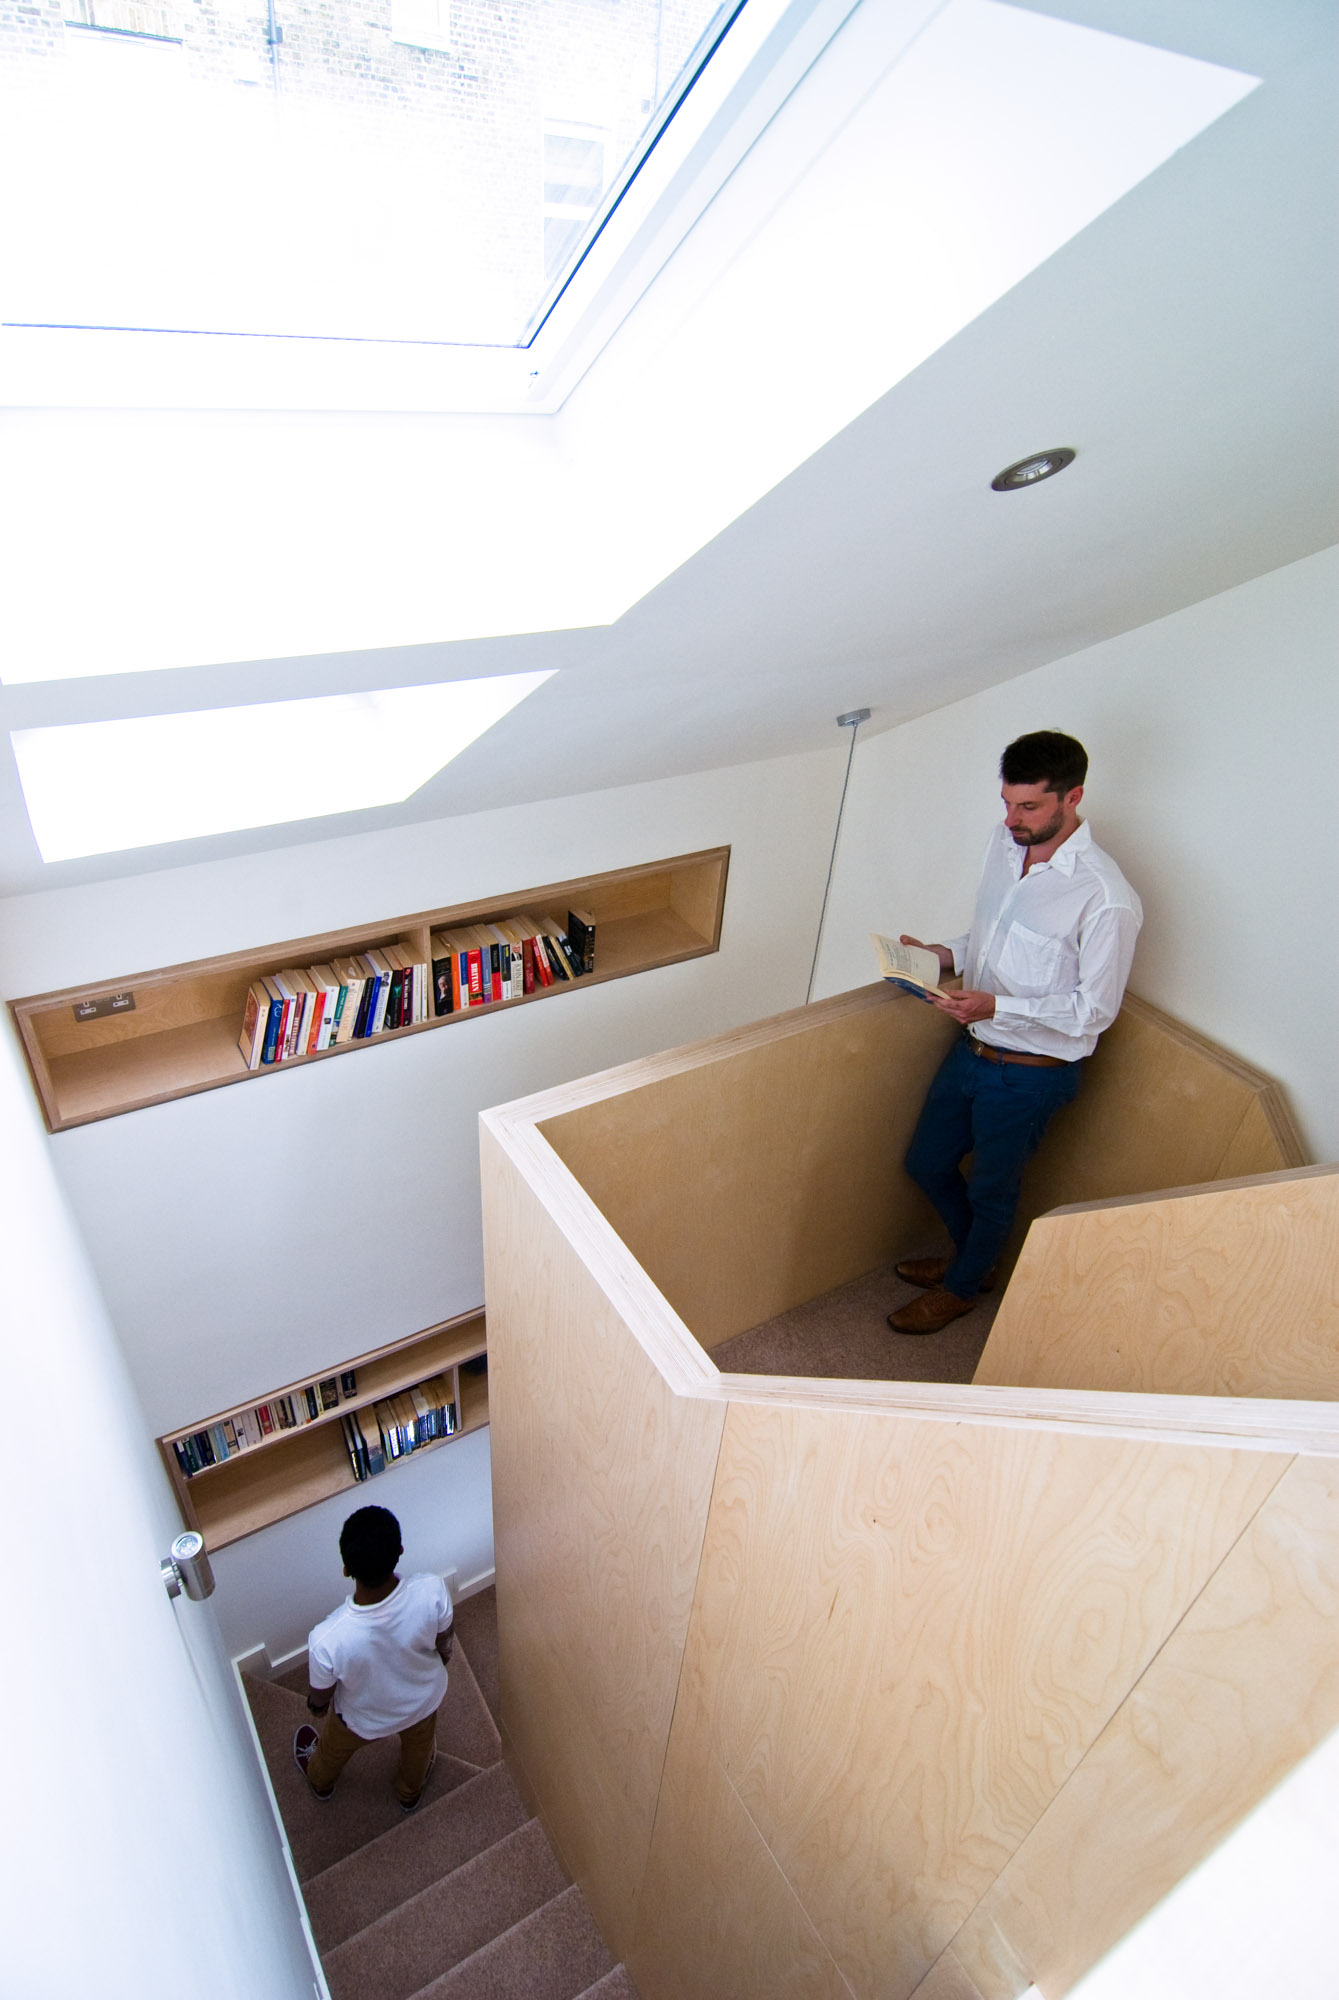 Original plywood staircase with plywood bookshelves incorporated into the walls.